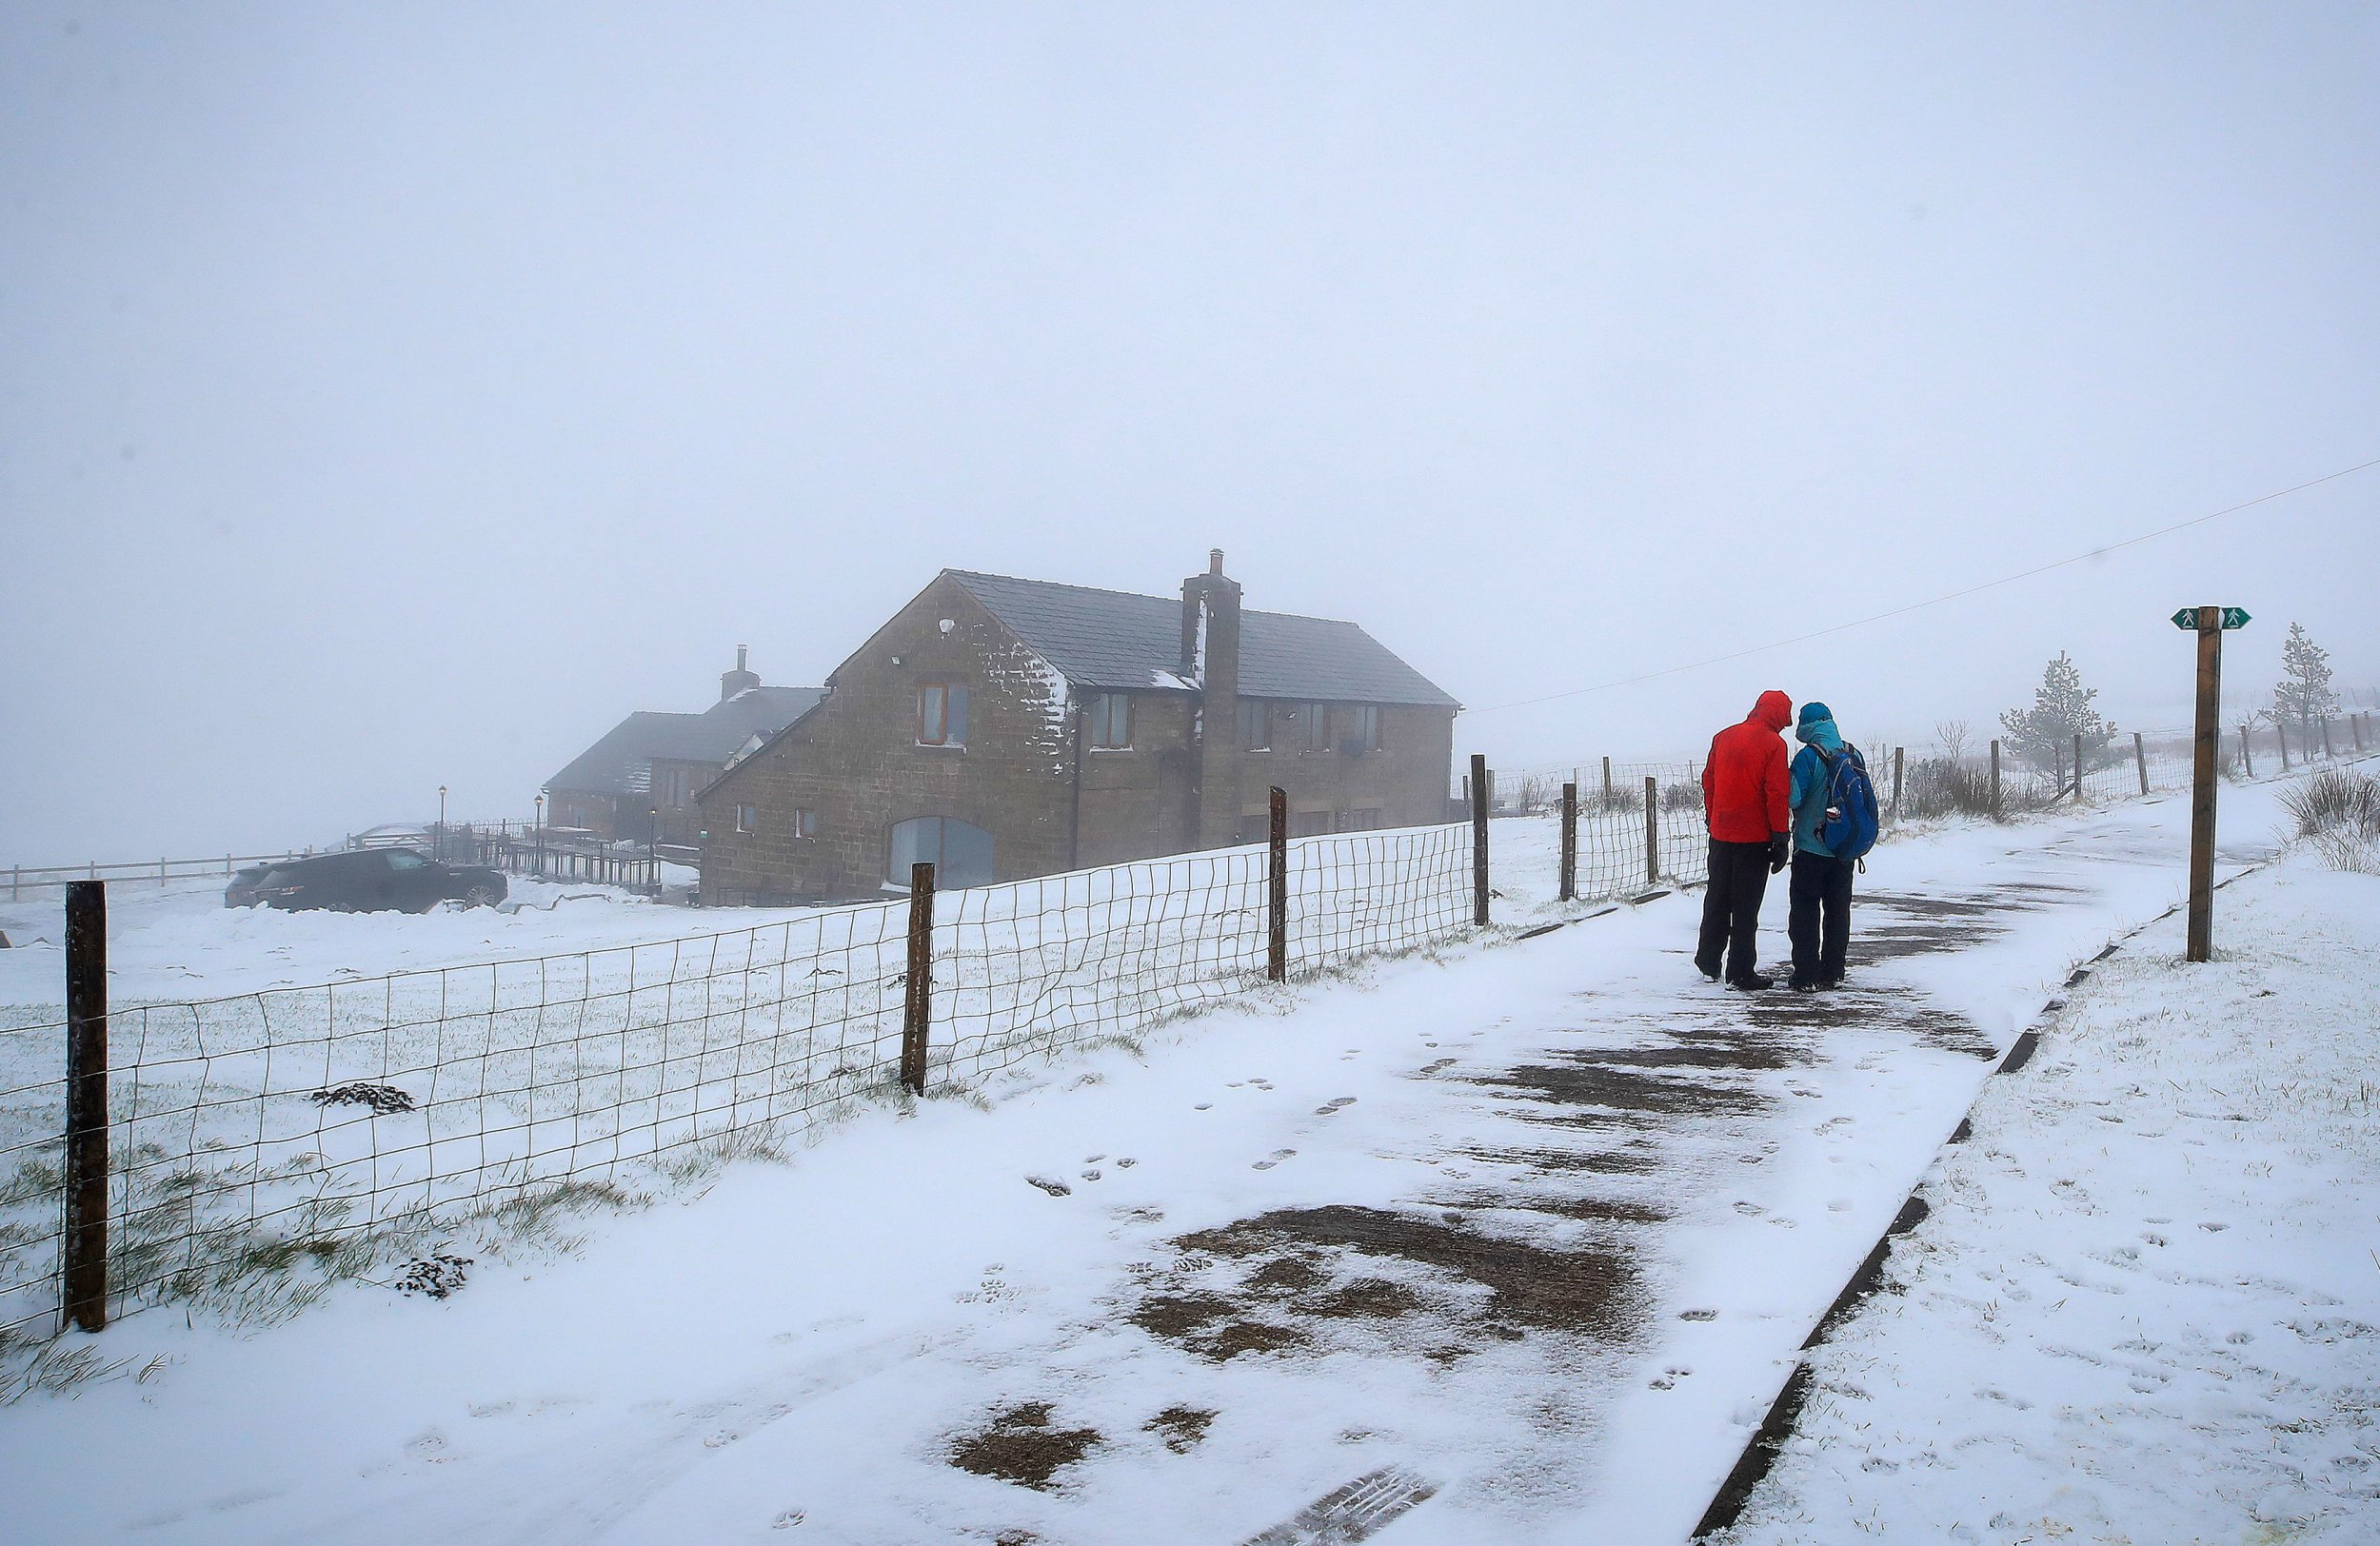 Walkers on a snow-covered path outside the Peak View tea rooms near Macclesfield, Cheshire. PRESS ASSOCIATION Photo. Picture date: Saturday January 19, 2019. The current cold spell will continue over the weekend, with largely grey, gloomy conditions and patches of rain and sleet in southern areas on Saturday, according to the Met Office. See PA story WEATHER Cold. Photo credit should read: Peter Byrne/PA Wire